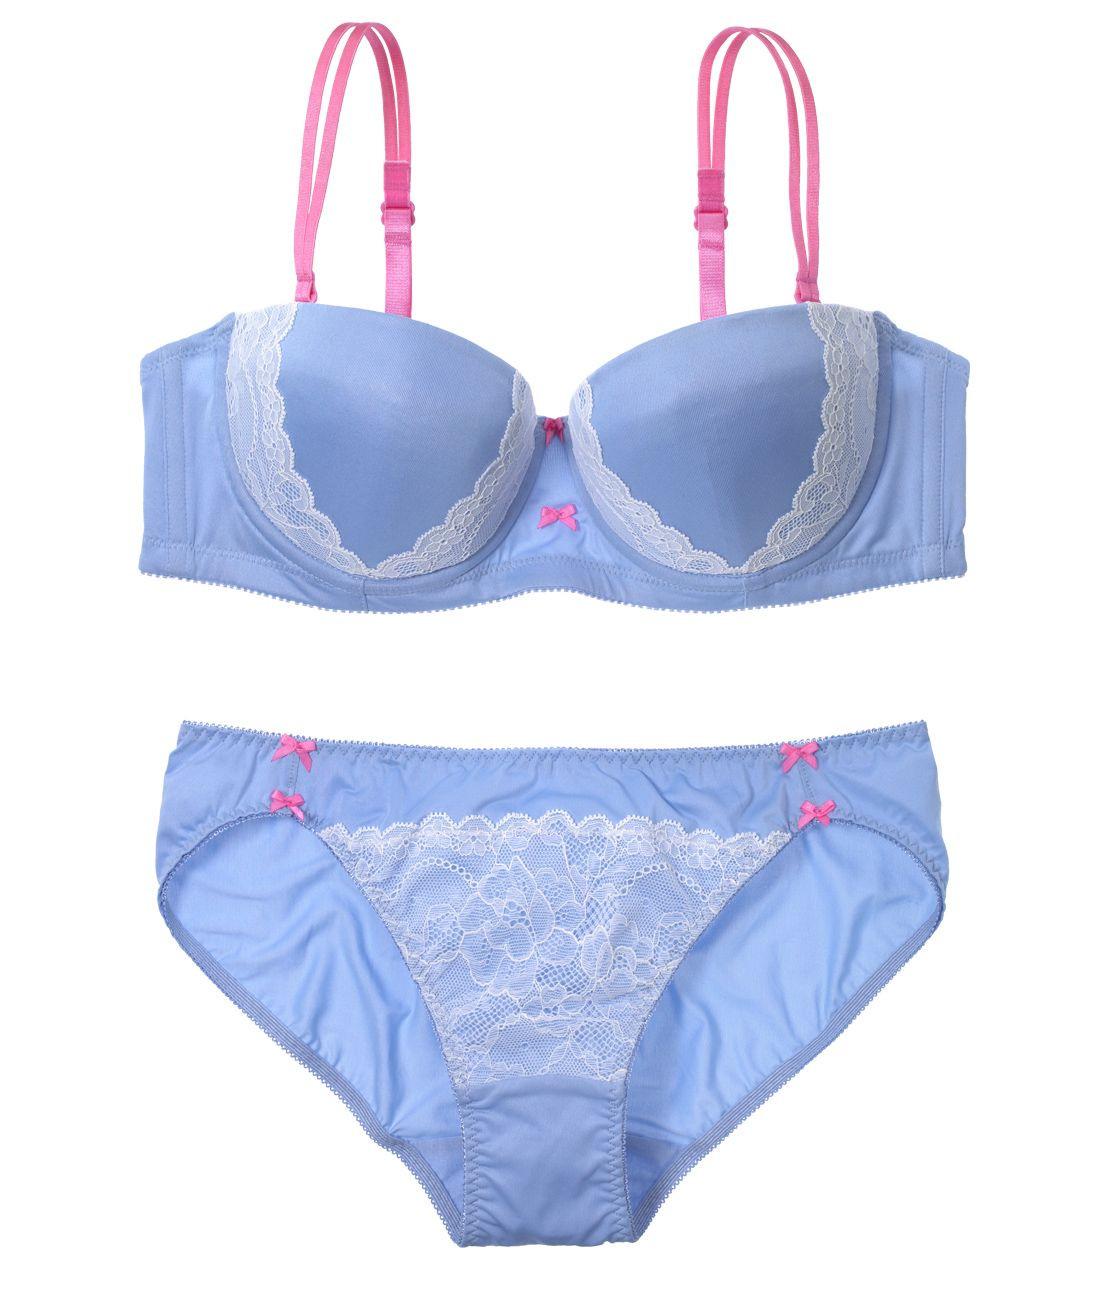 YM Strapless set